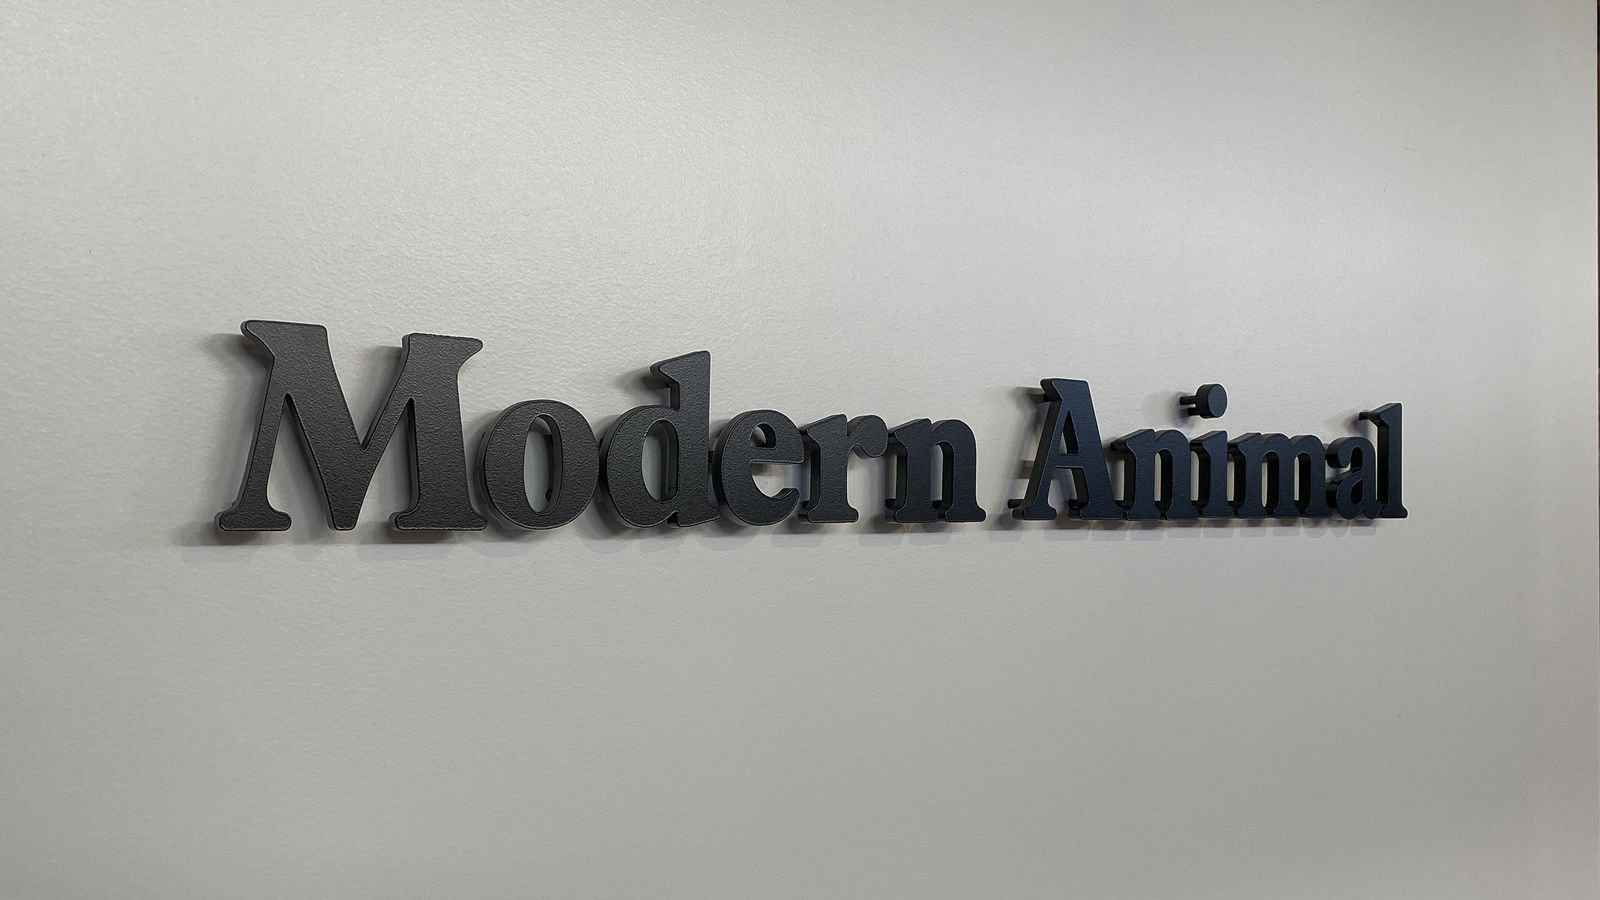 Modern Animal 3d acrylic letters sign painted in black color for interior branding